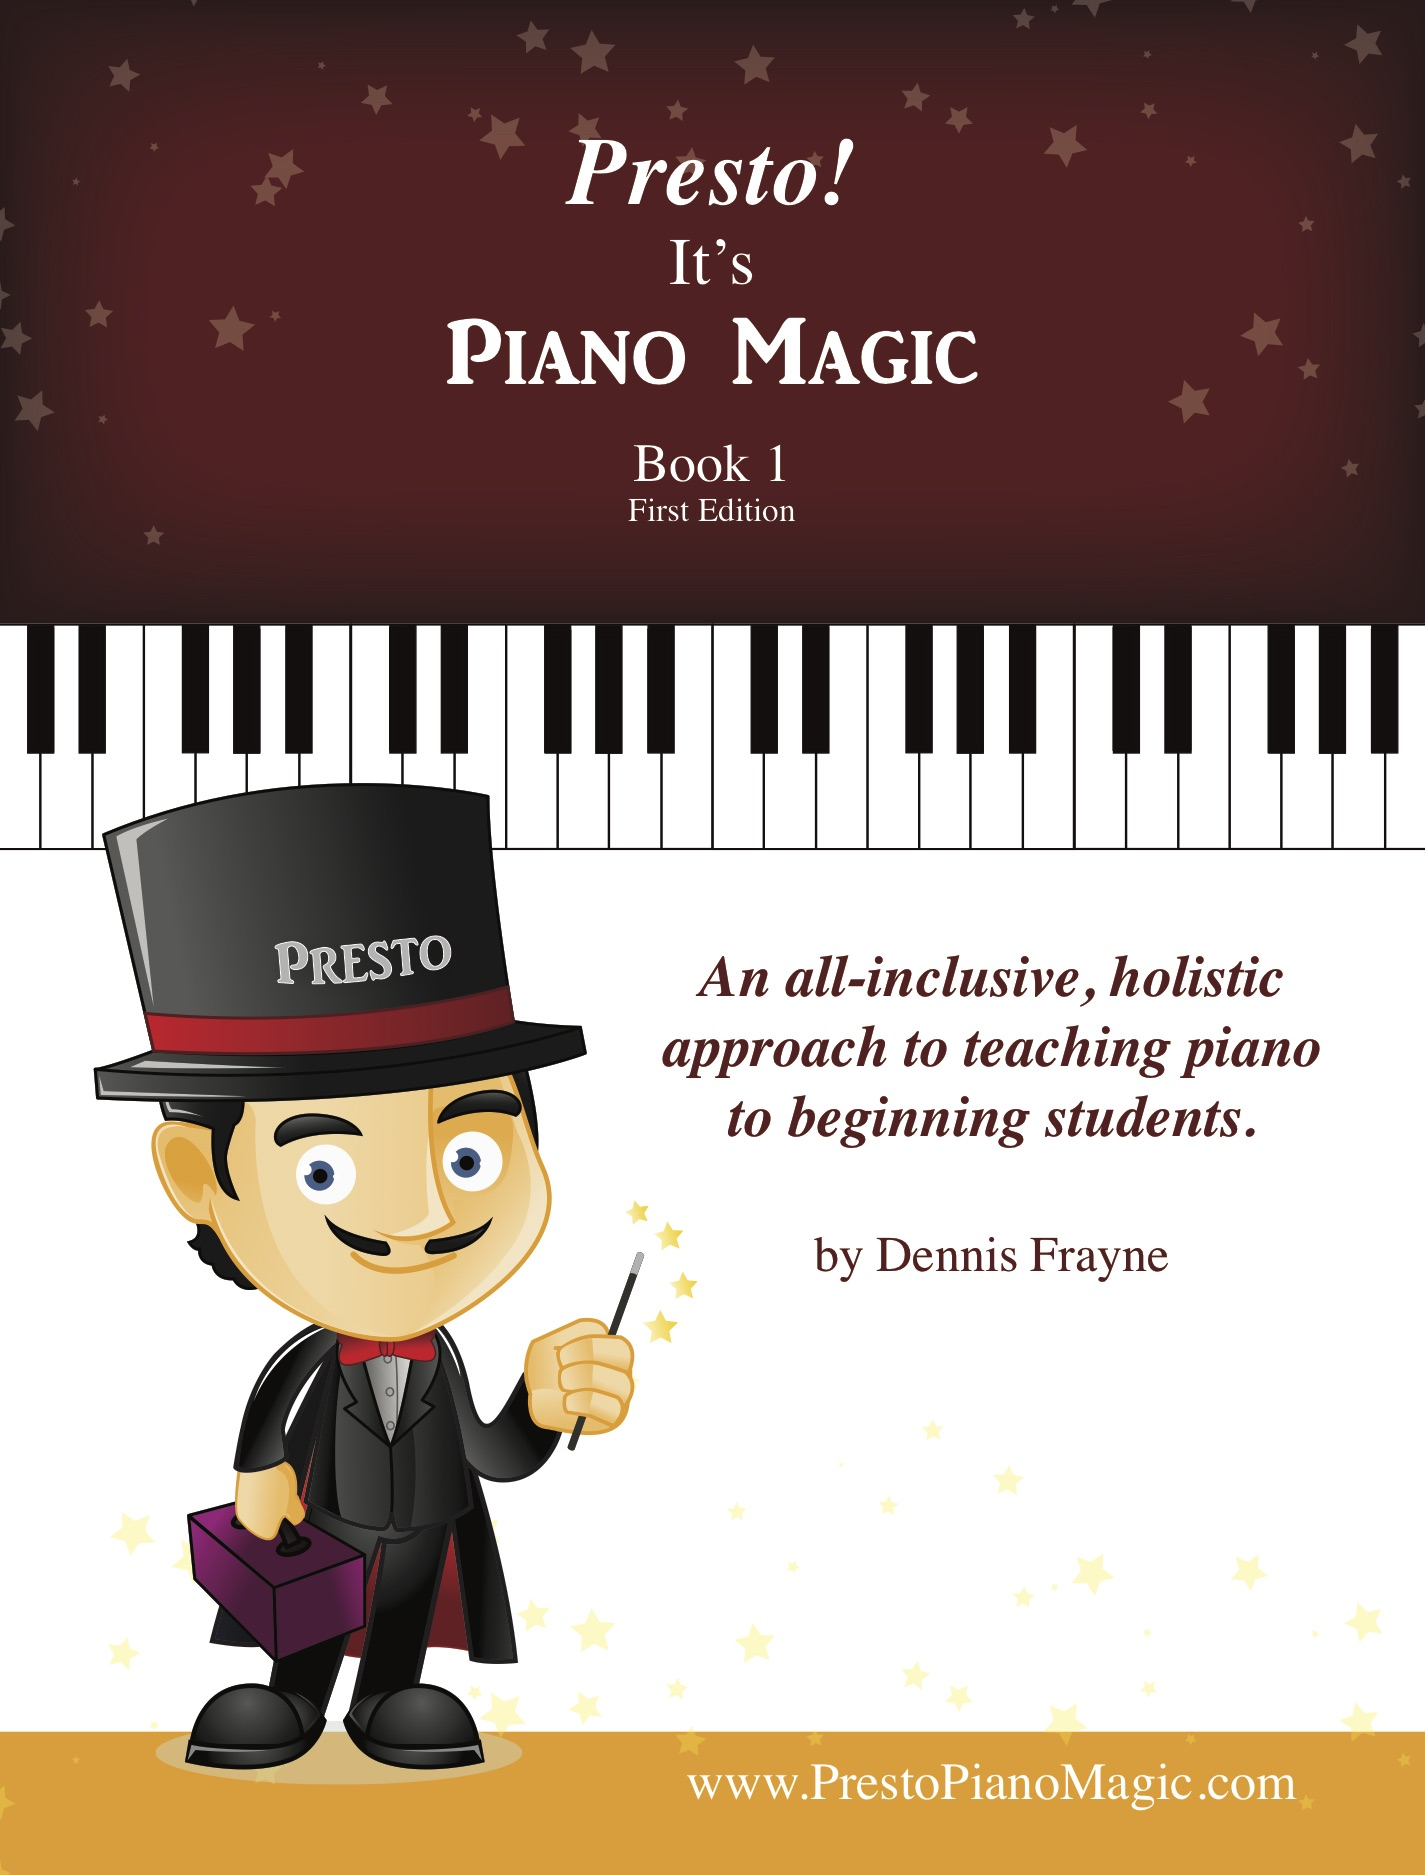 Presto! It's Piano Magic, Book 1